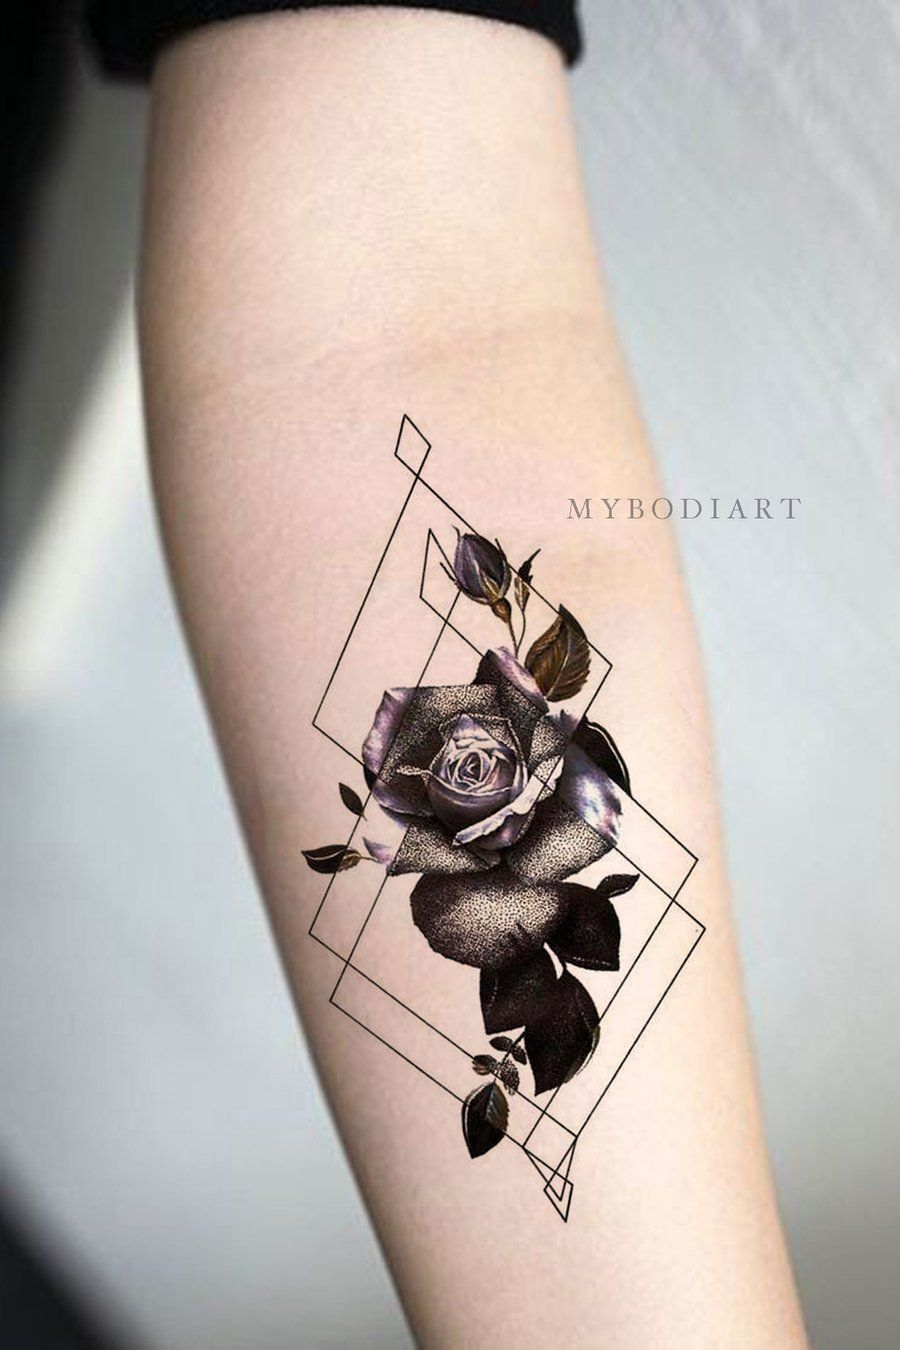 Trending Watercolor Black Rose Geometric Shape Forearm Tattoo Ideas for Women –  Ideas frescas del tatuaje del antebrazo de la flor para las mujeres -…